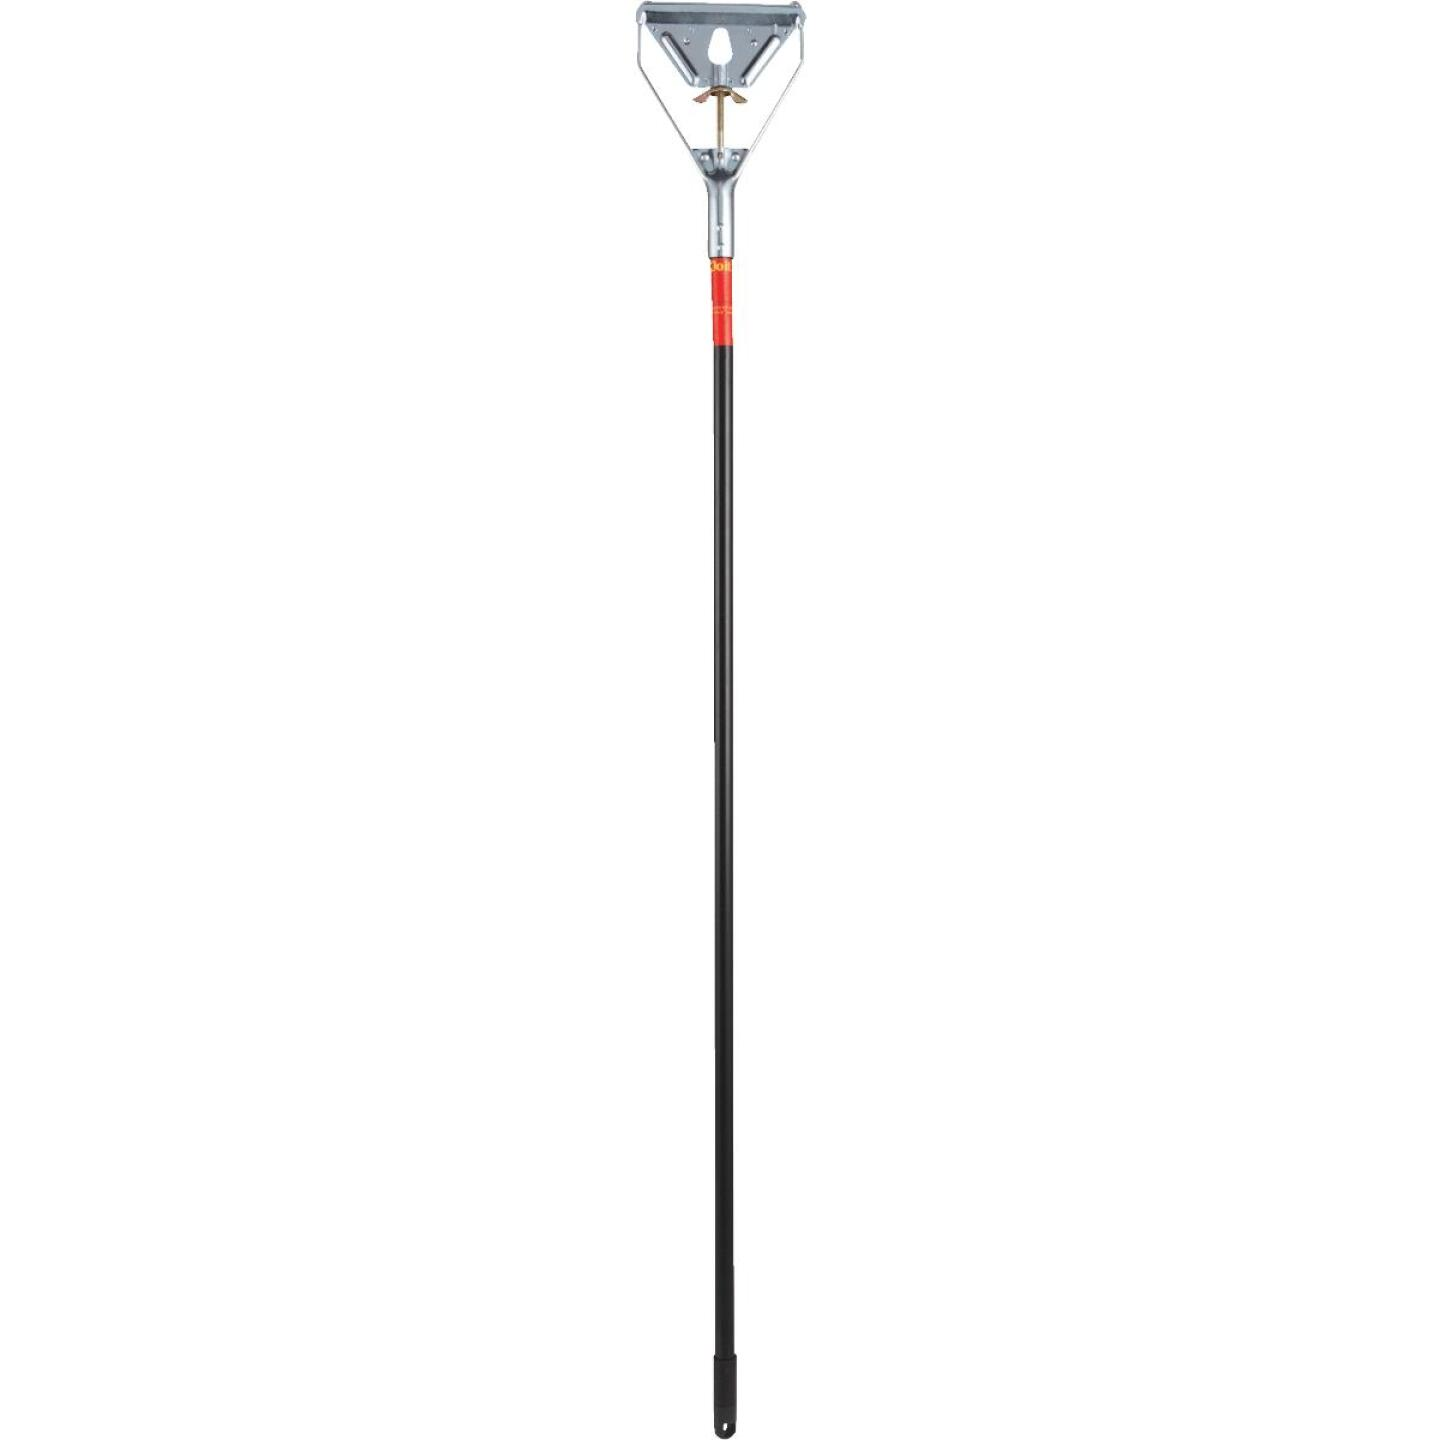 Do it Professional 60 In. Steel Mop Handle Image 5